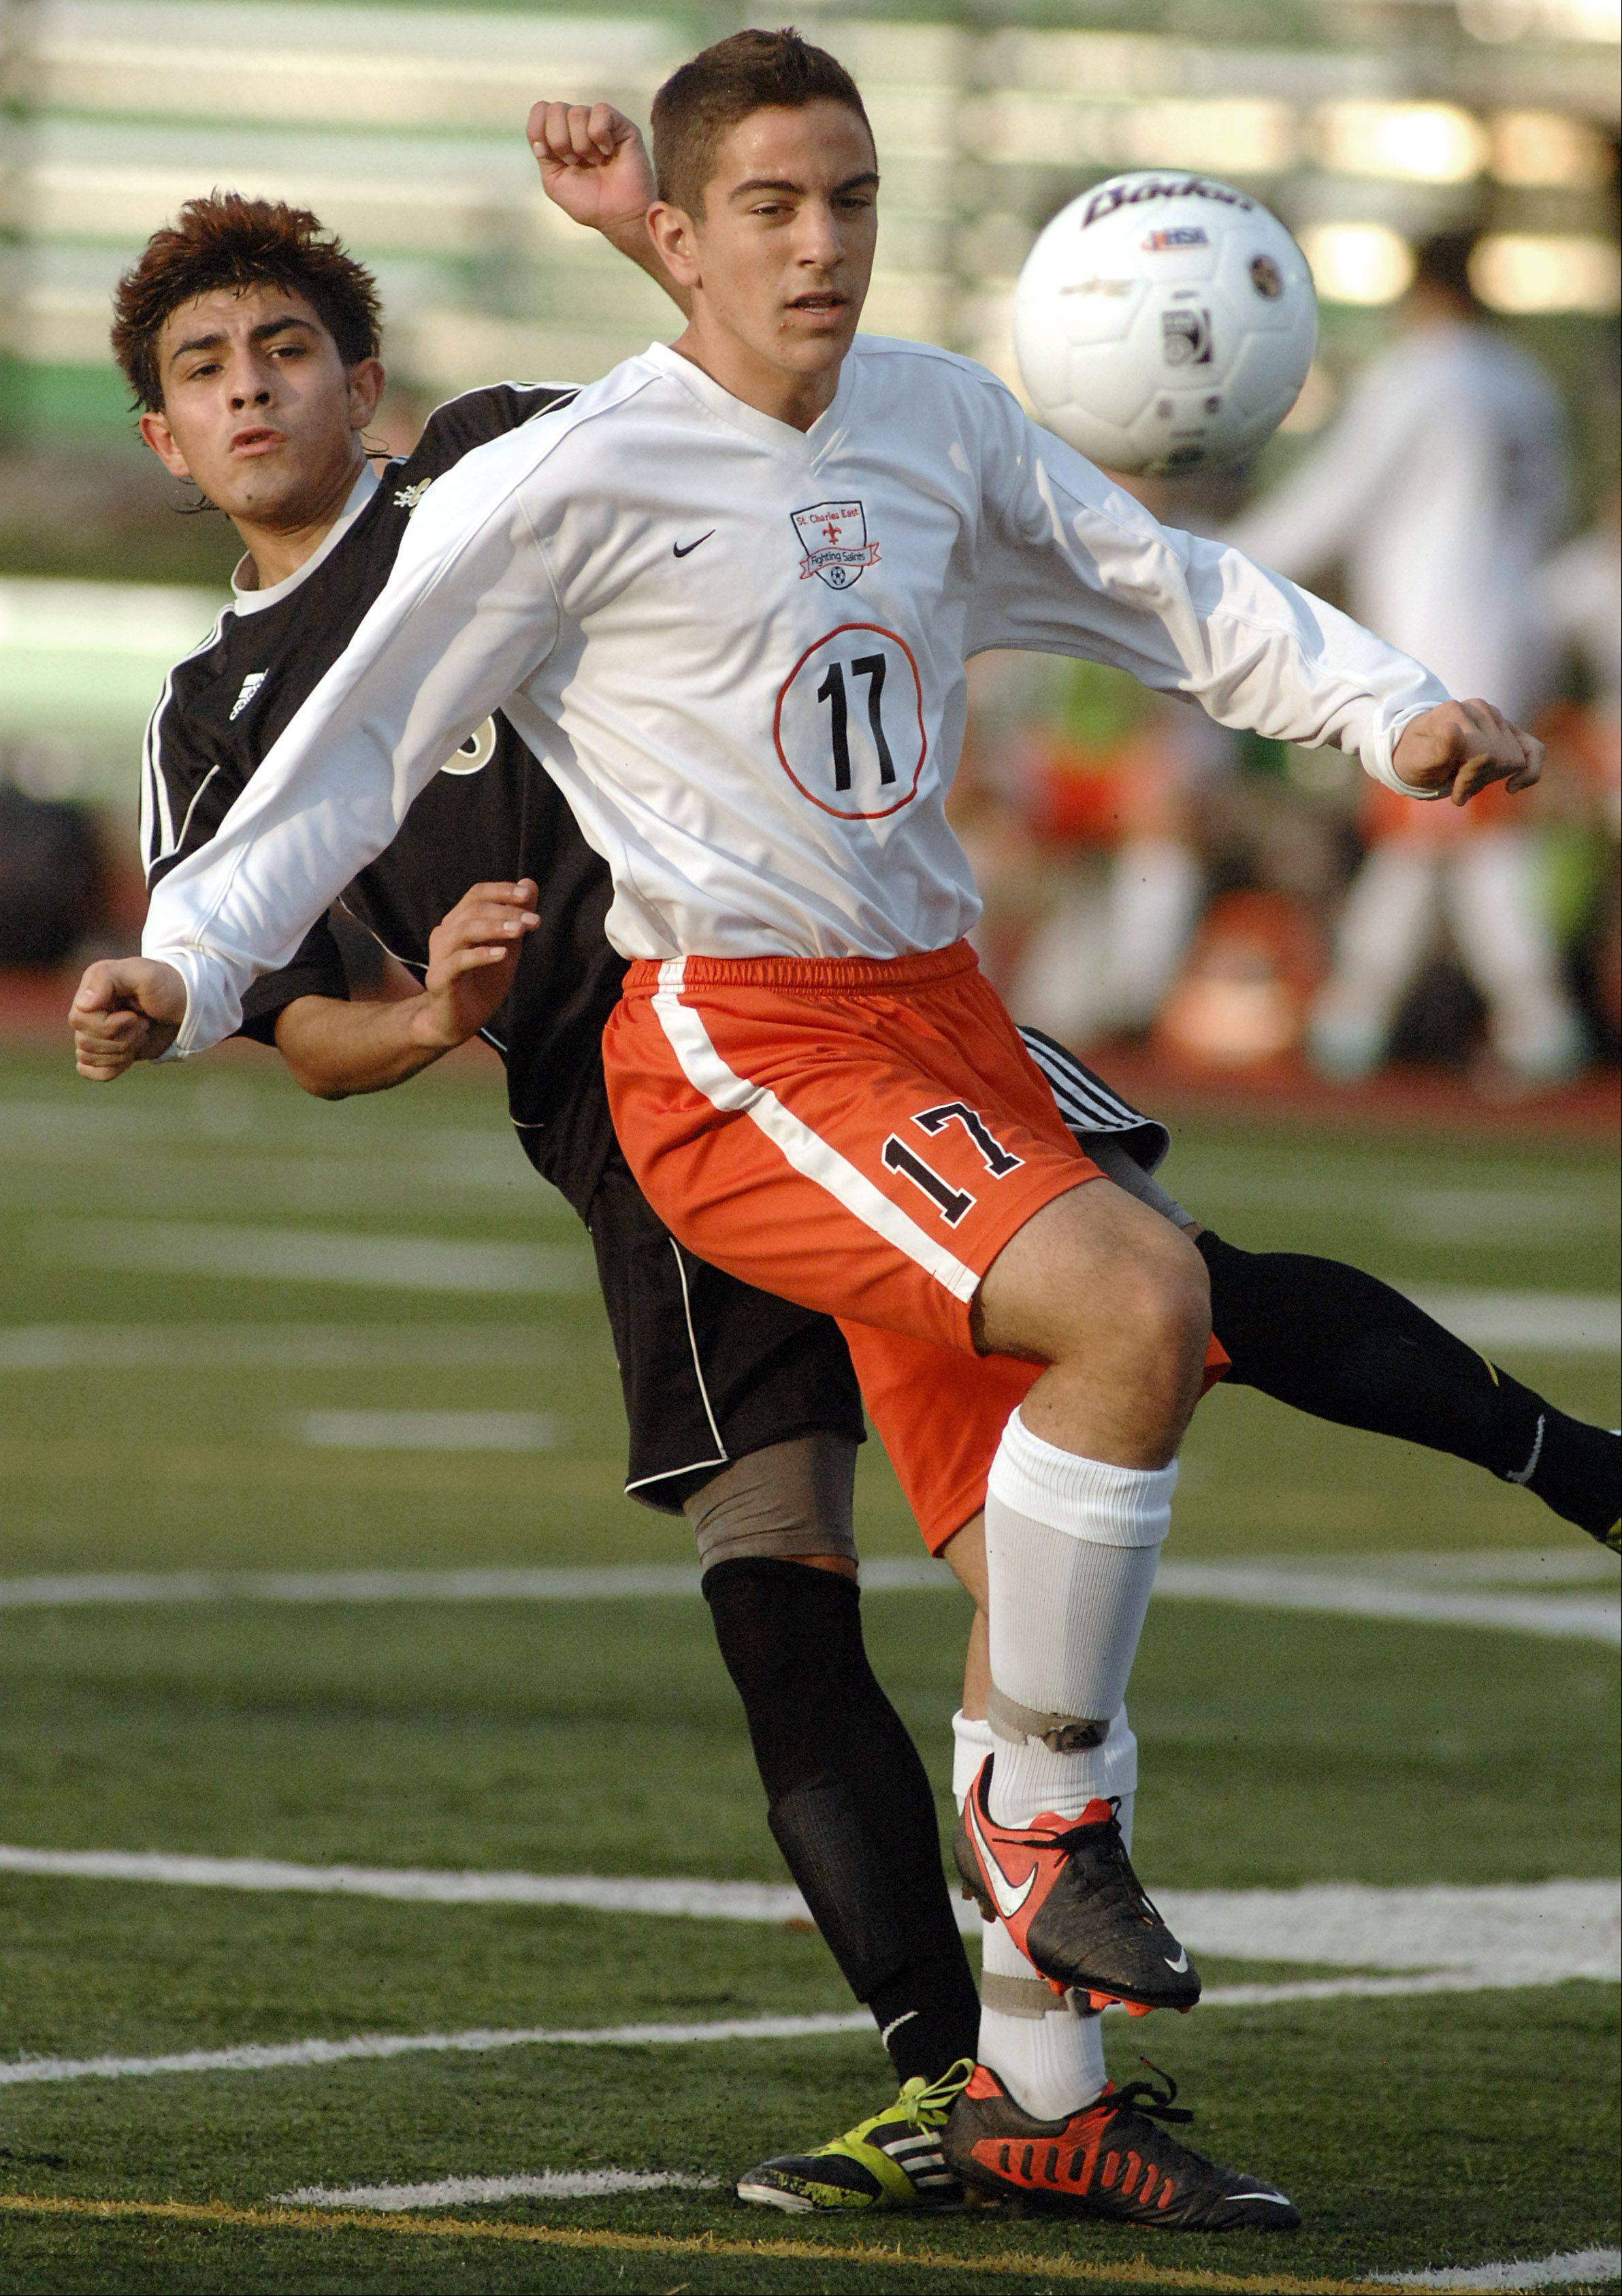 Streamwood�s Christian Vences and St. Charles East�s Brad Corirossi fight for the ball in the first half on Tuesday at the York sectional.